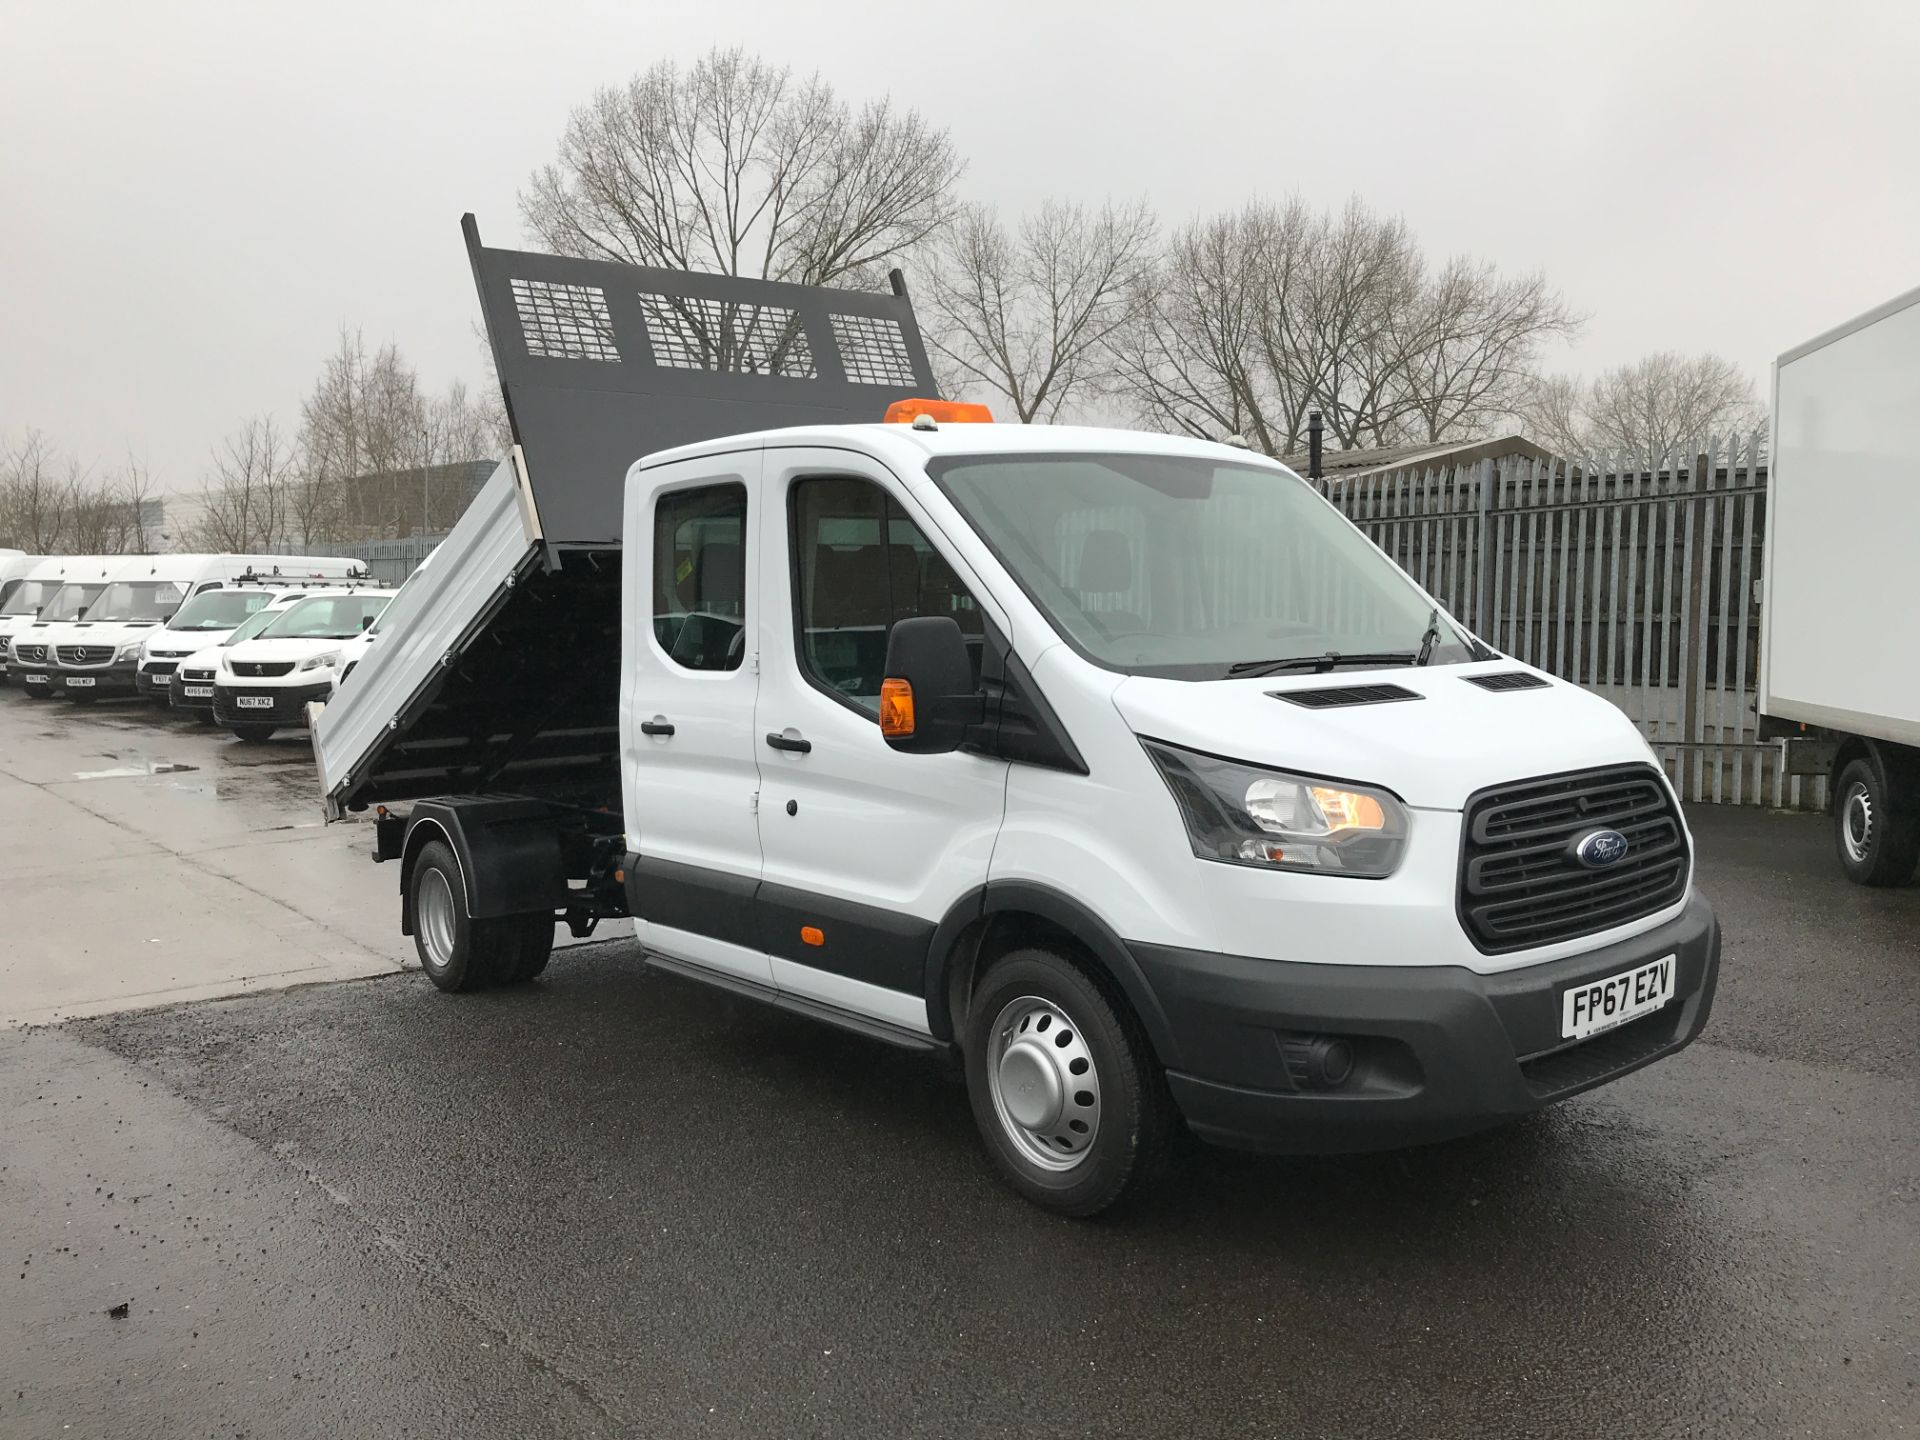 2018 Ford Transit 350 L3 DOUBLE CAB TIPPER 130PS EURO 5 (FP67EZV)